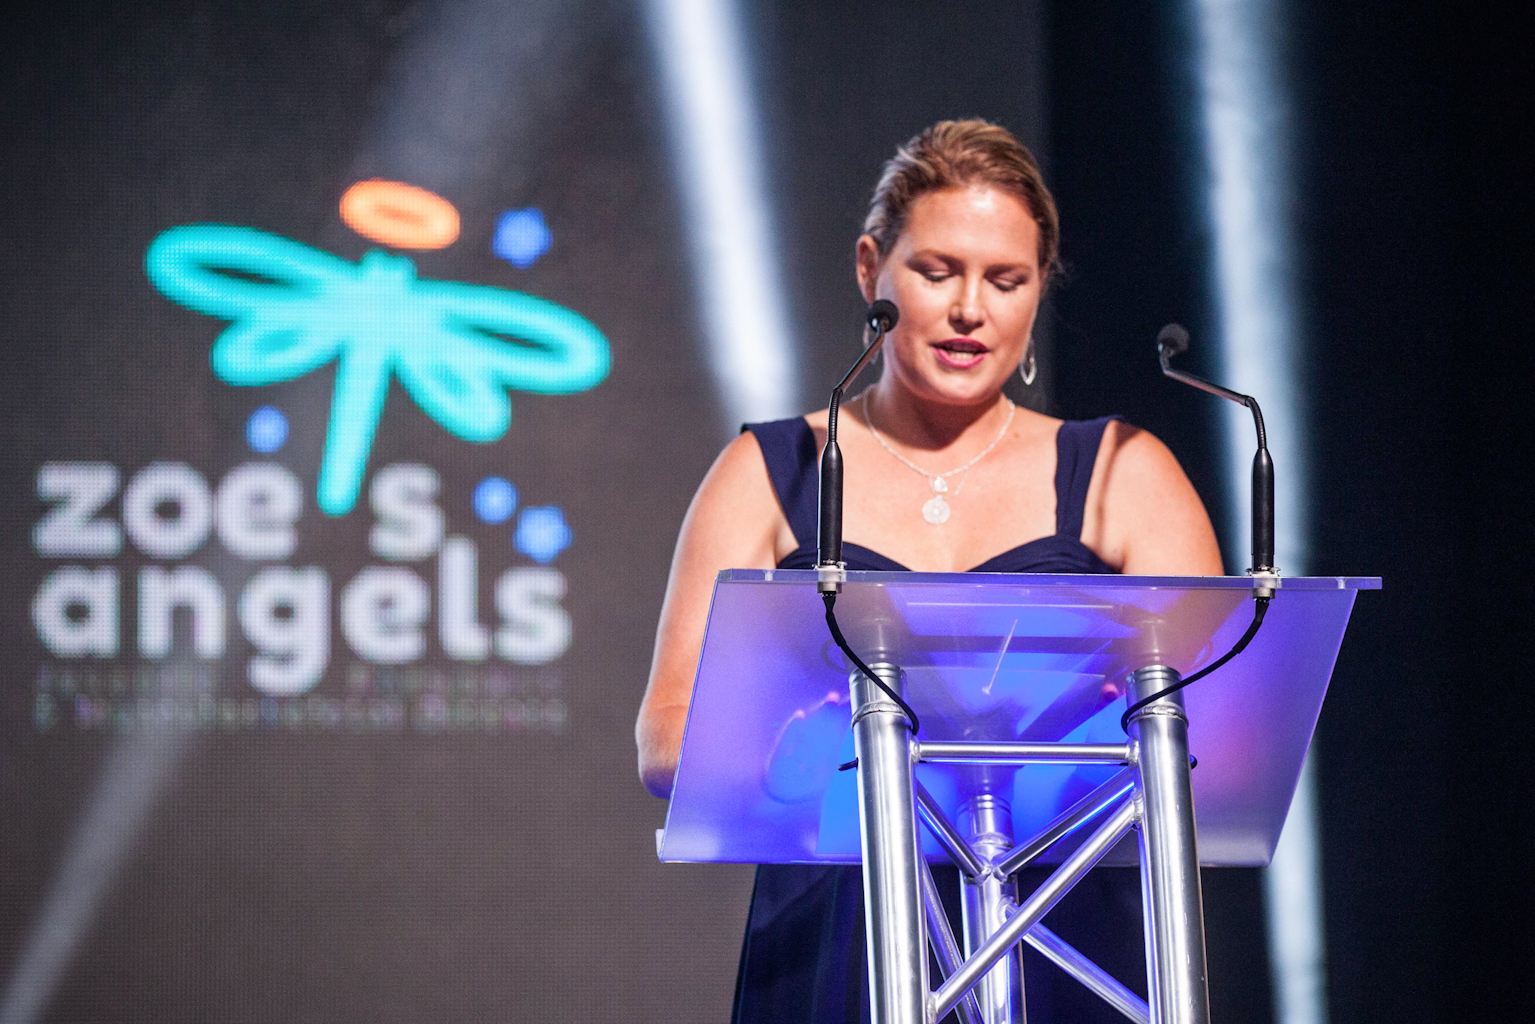 Founder of Zoe's Angels Charity Event held at the Sofitel Hotel in Brisbane